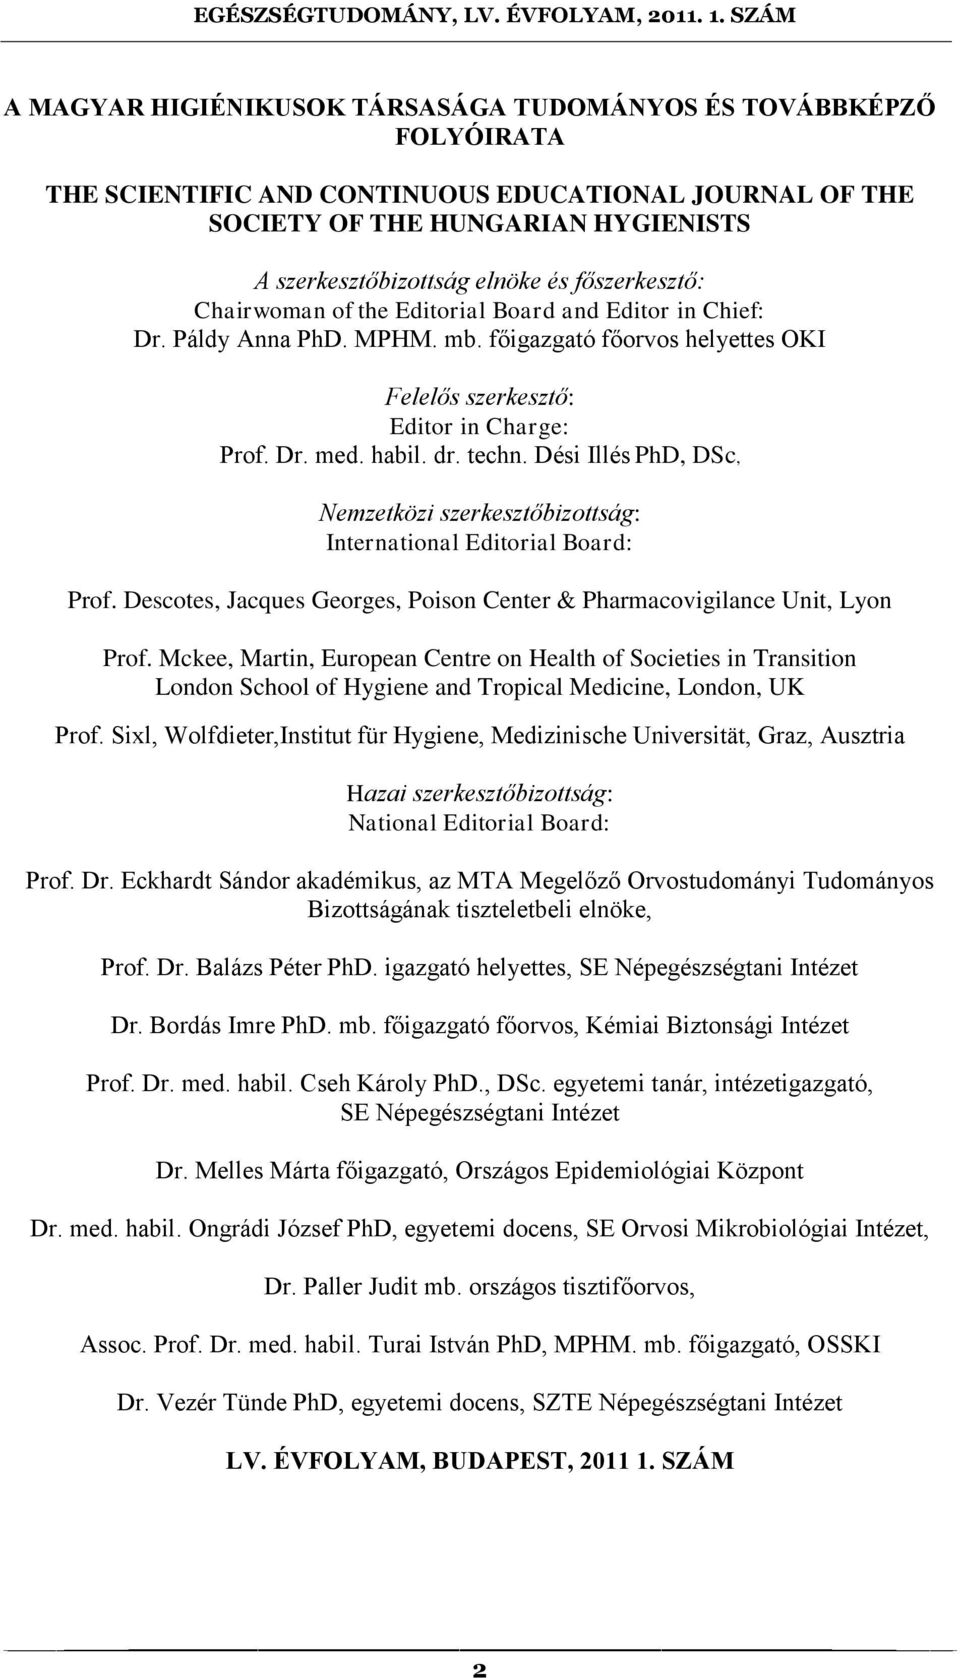 techn. Dési Illés PhD, DSc, Nemzetközi szerkesztőbizottság: International Editorial Board: Prof. Descotes, Jacques Georges, Poison Center & Pharmacovigilance Unit, Lyon Prof.